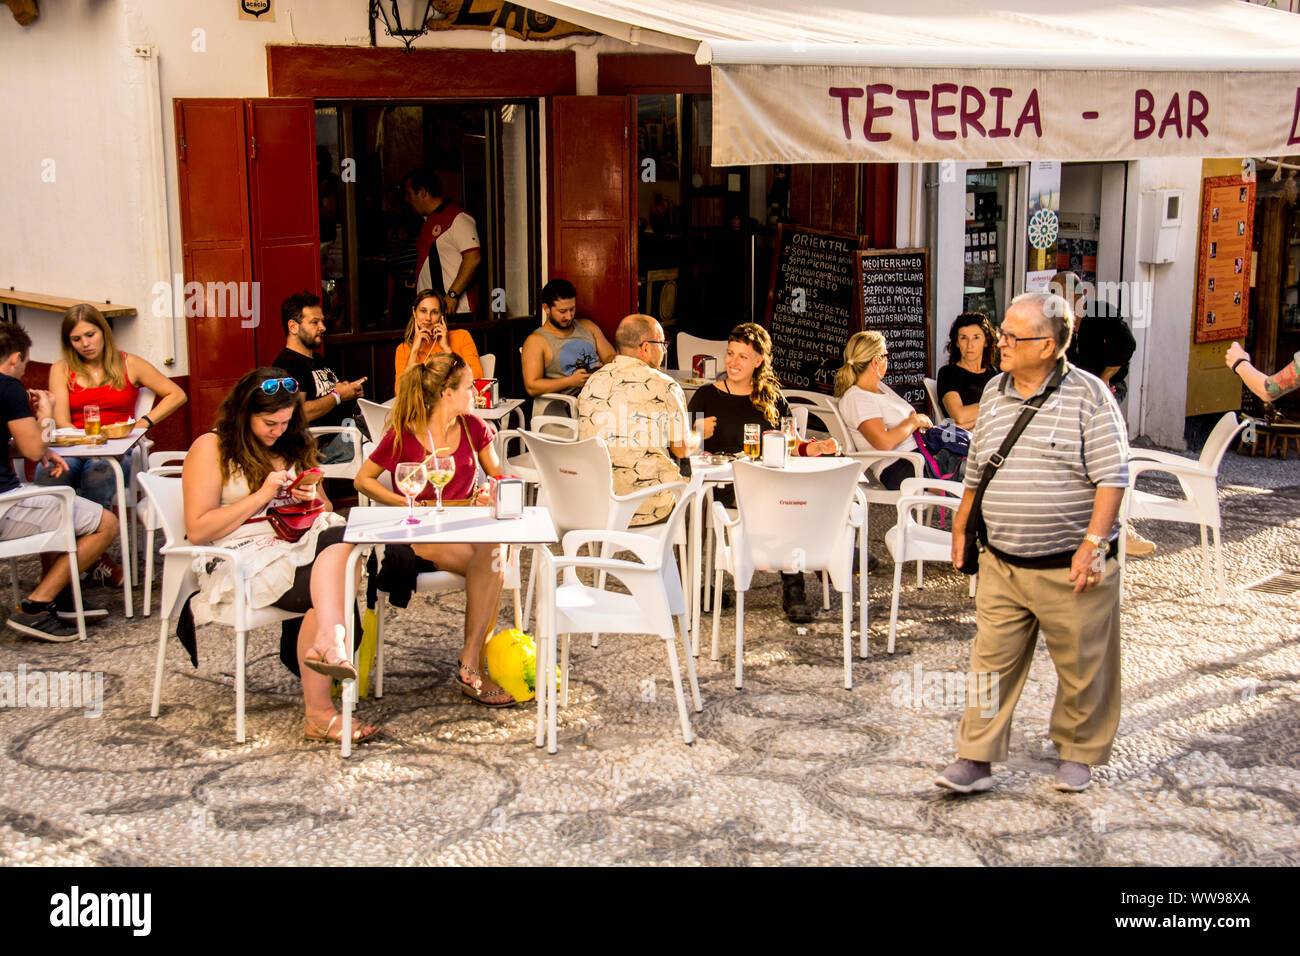 People eating at the Teteria Bar located in Granada, Spain. Stock Photo